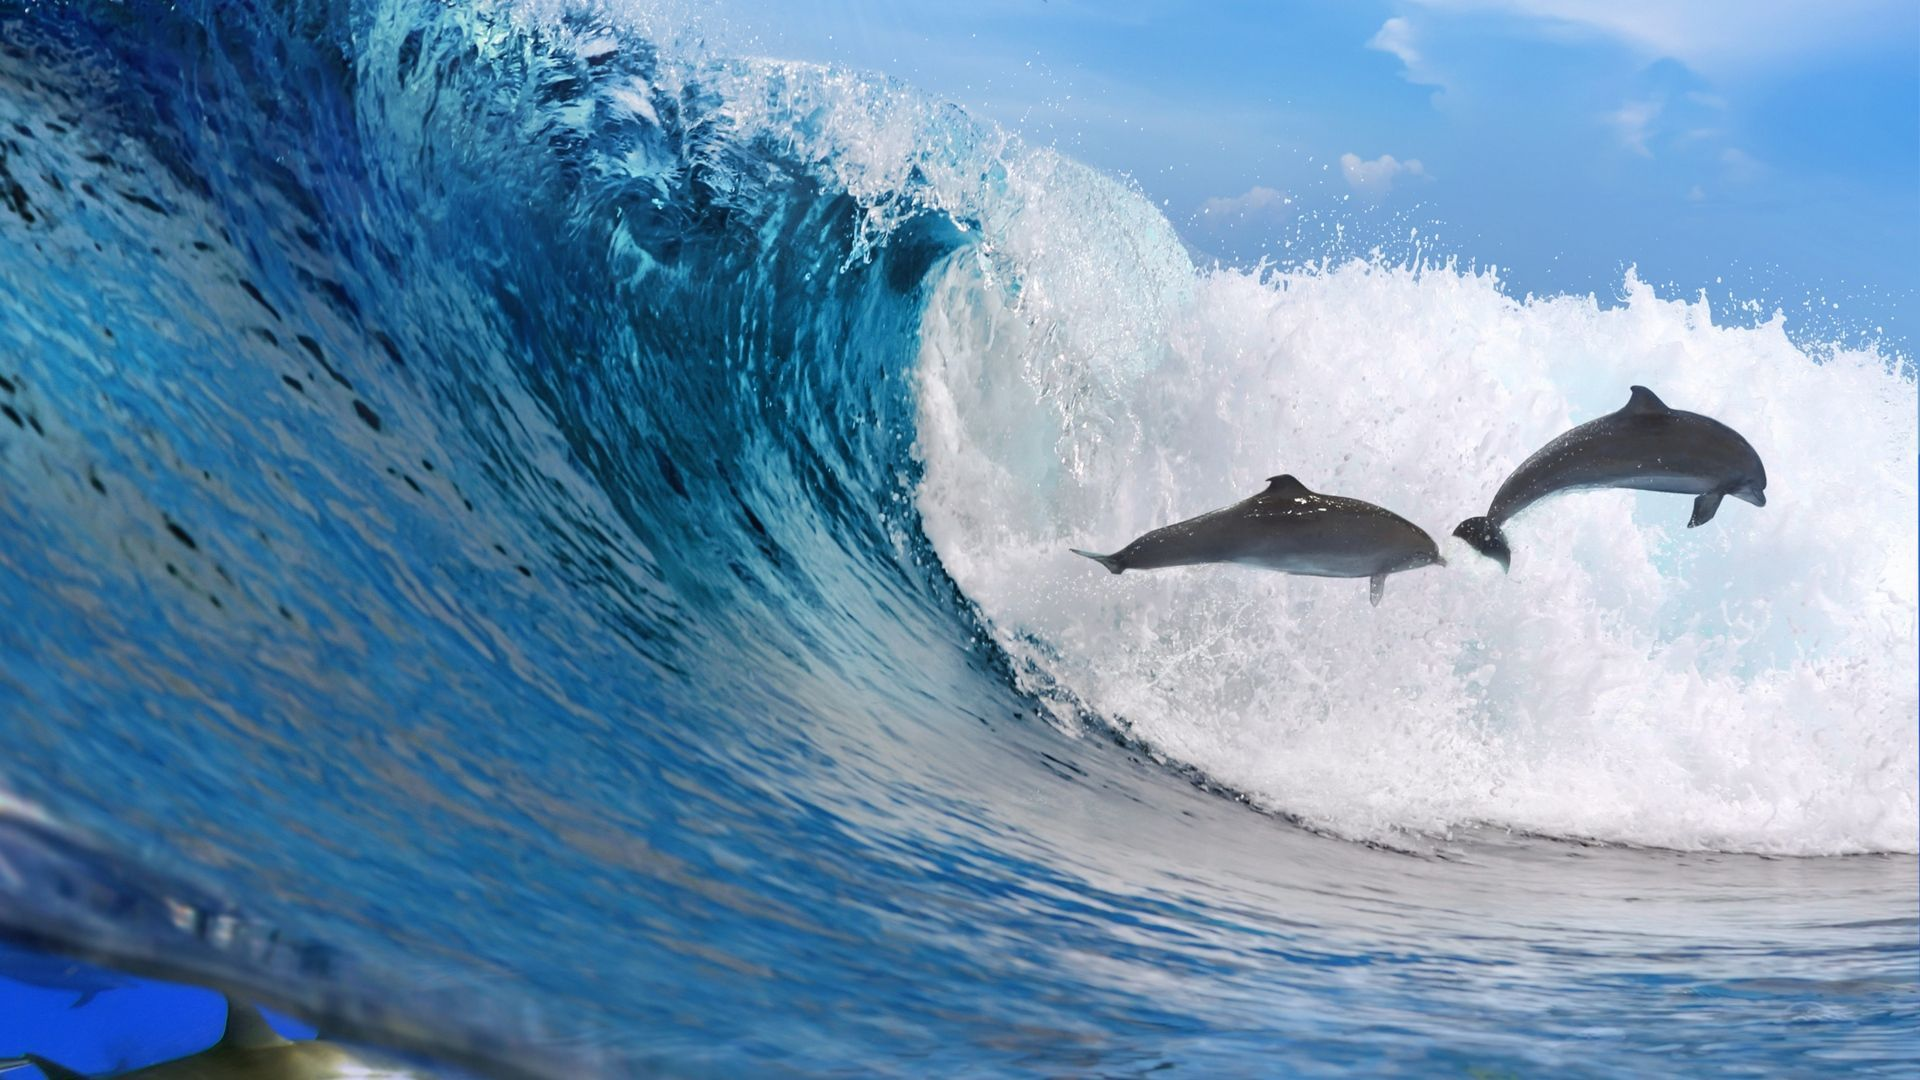 Dolphins In The Waves Of The Ocean